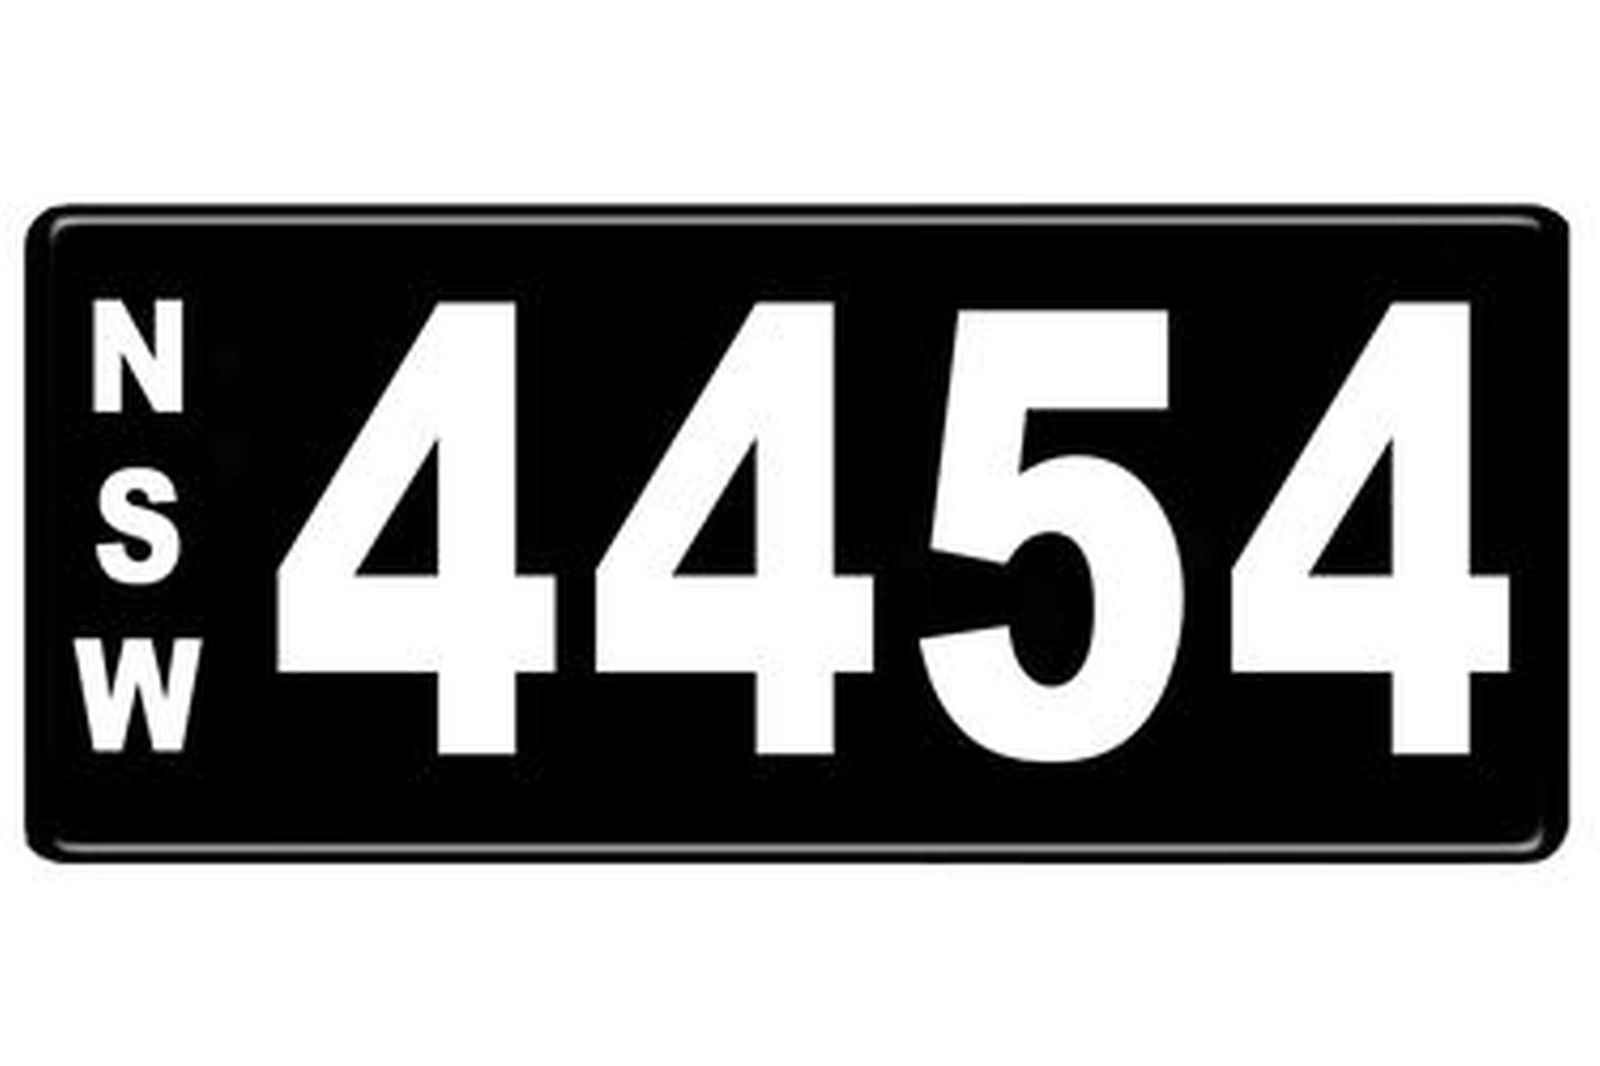 Number Plates - NSW Numerical Number Plates '4454'